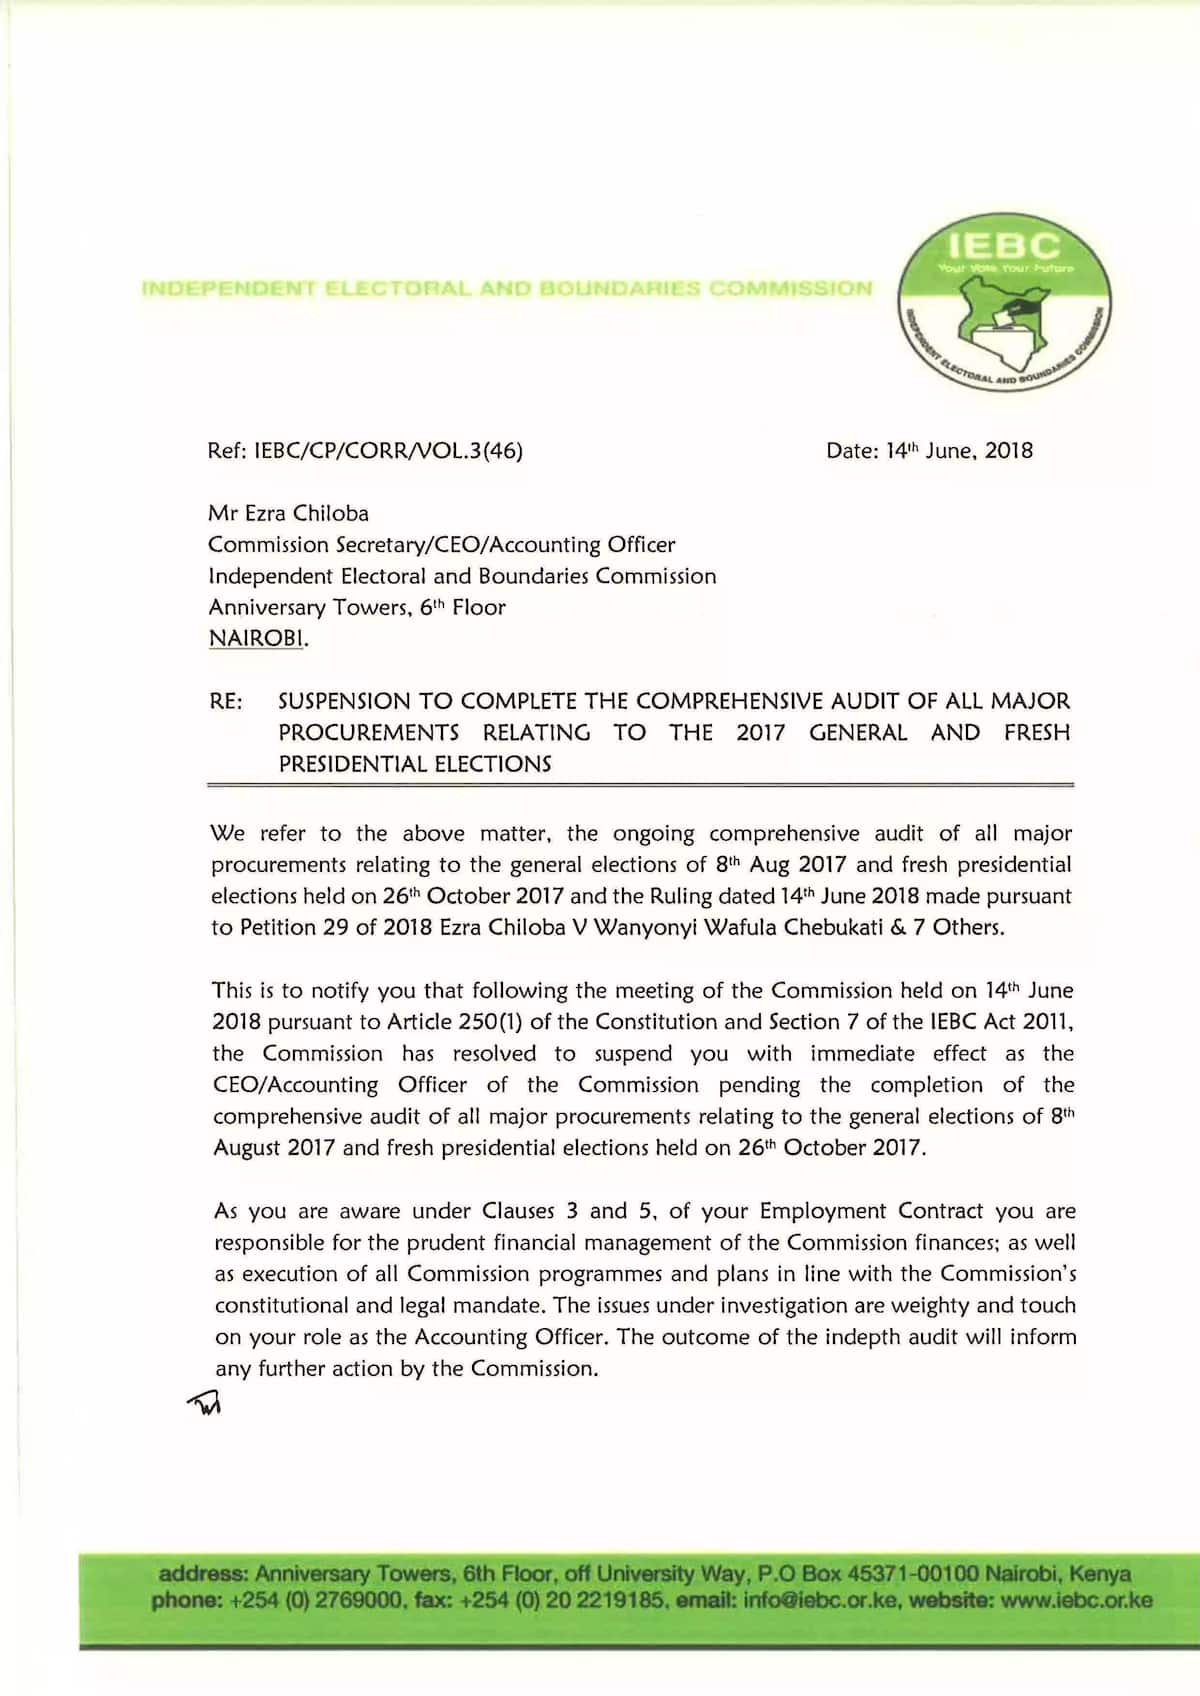 IEBC chair Chebukati suspends Chiloba again, hours after resuming office